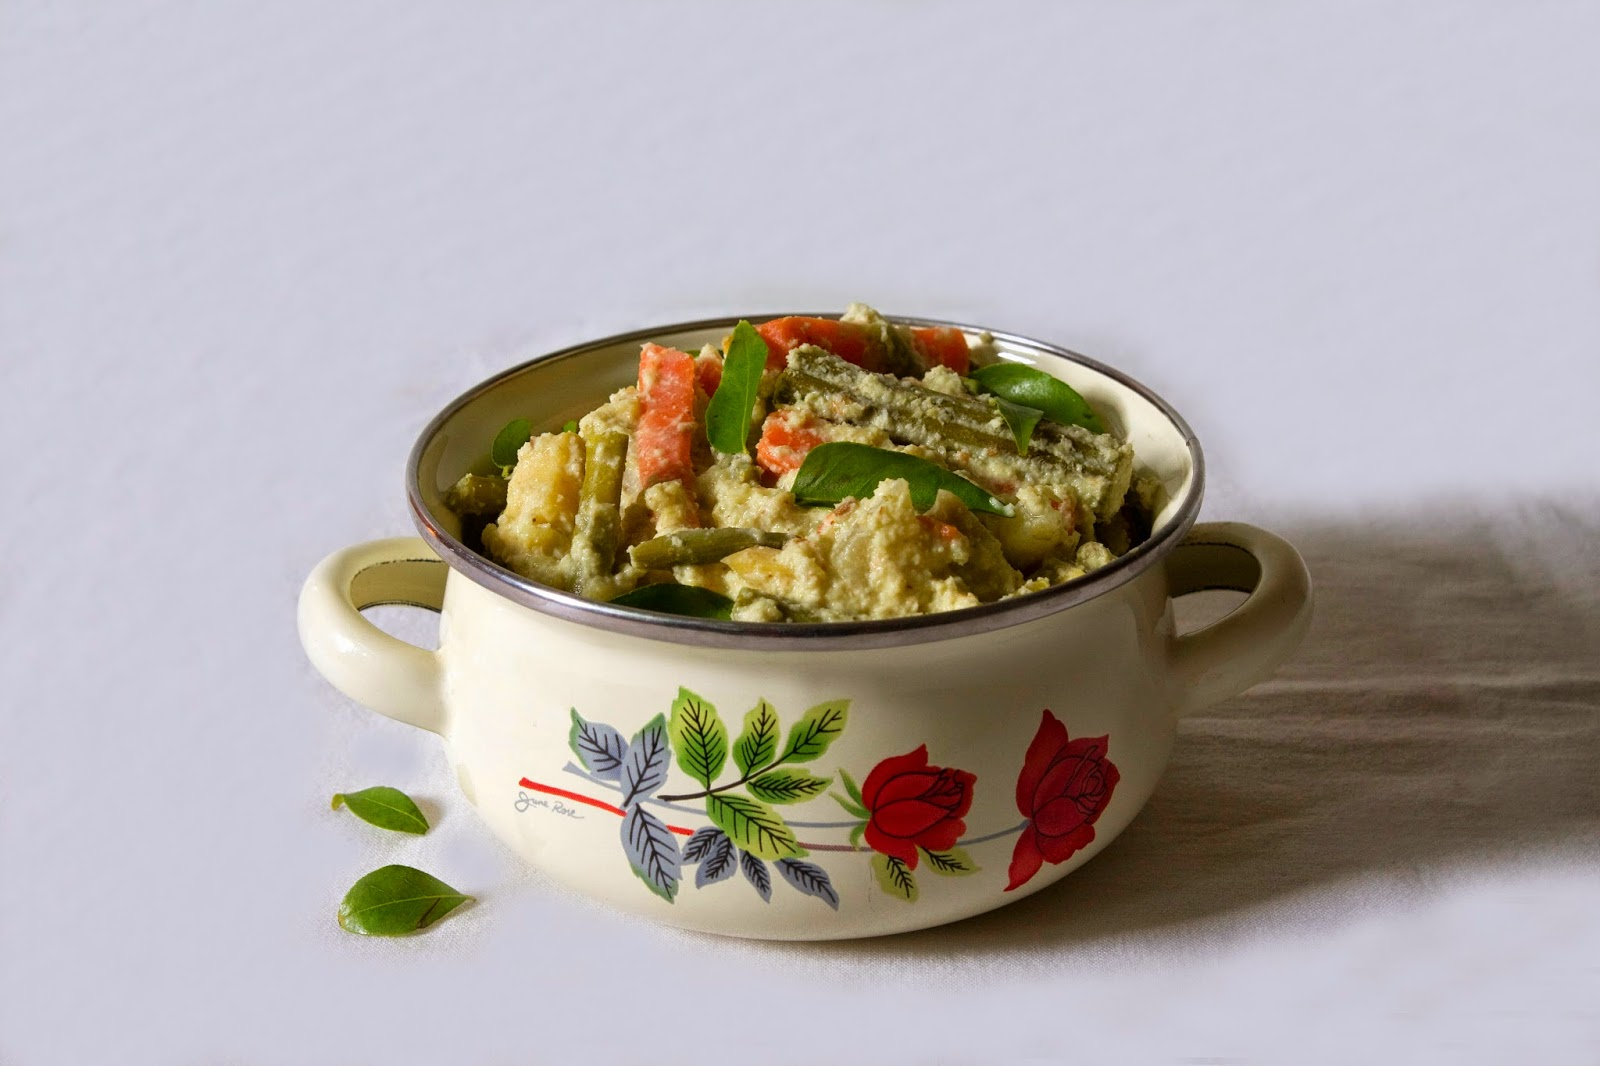 Aviyal (Mix vegetable in Curd)